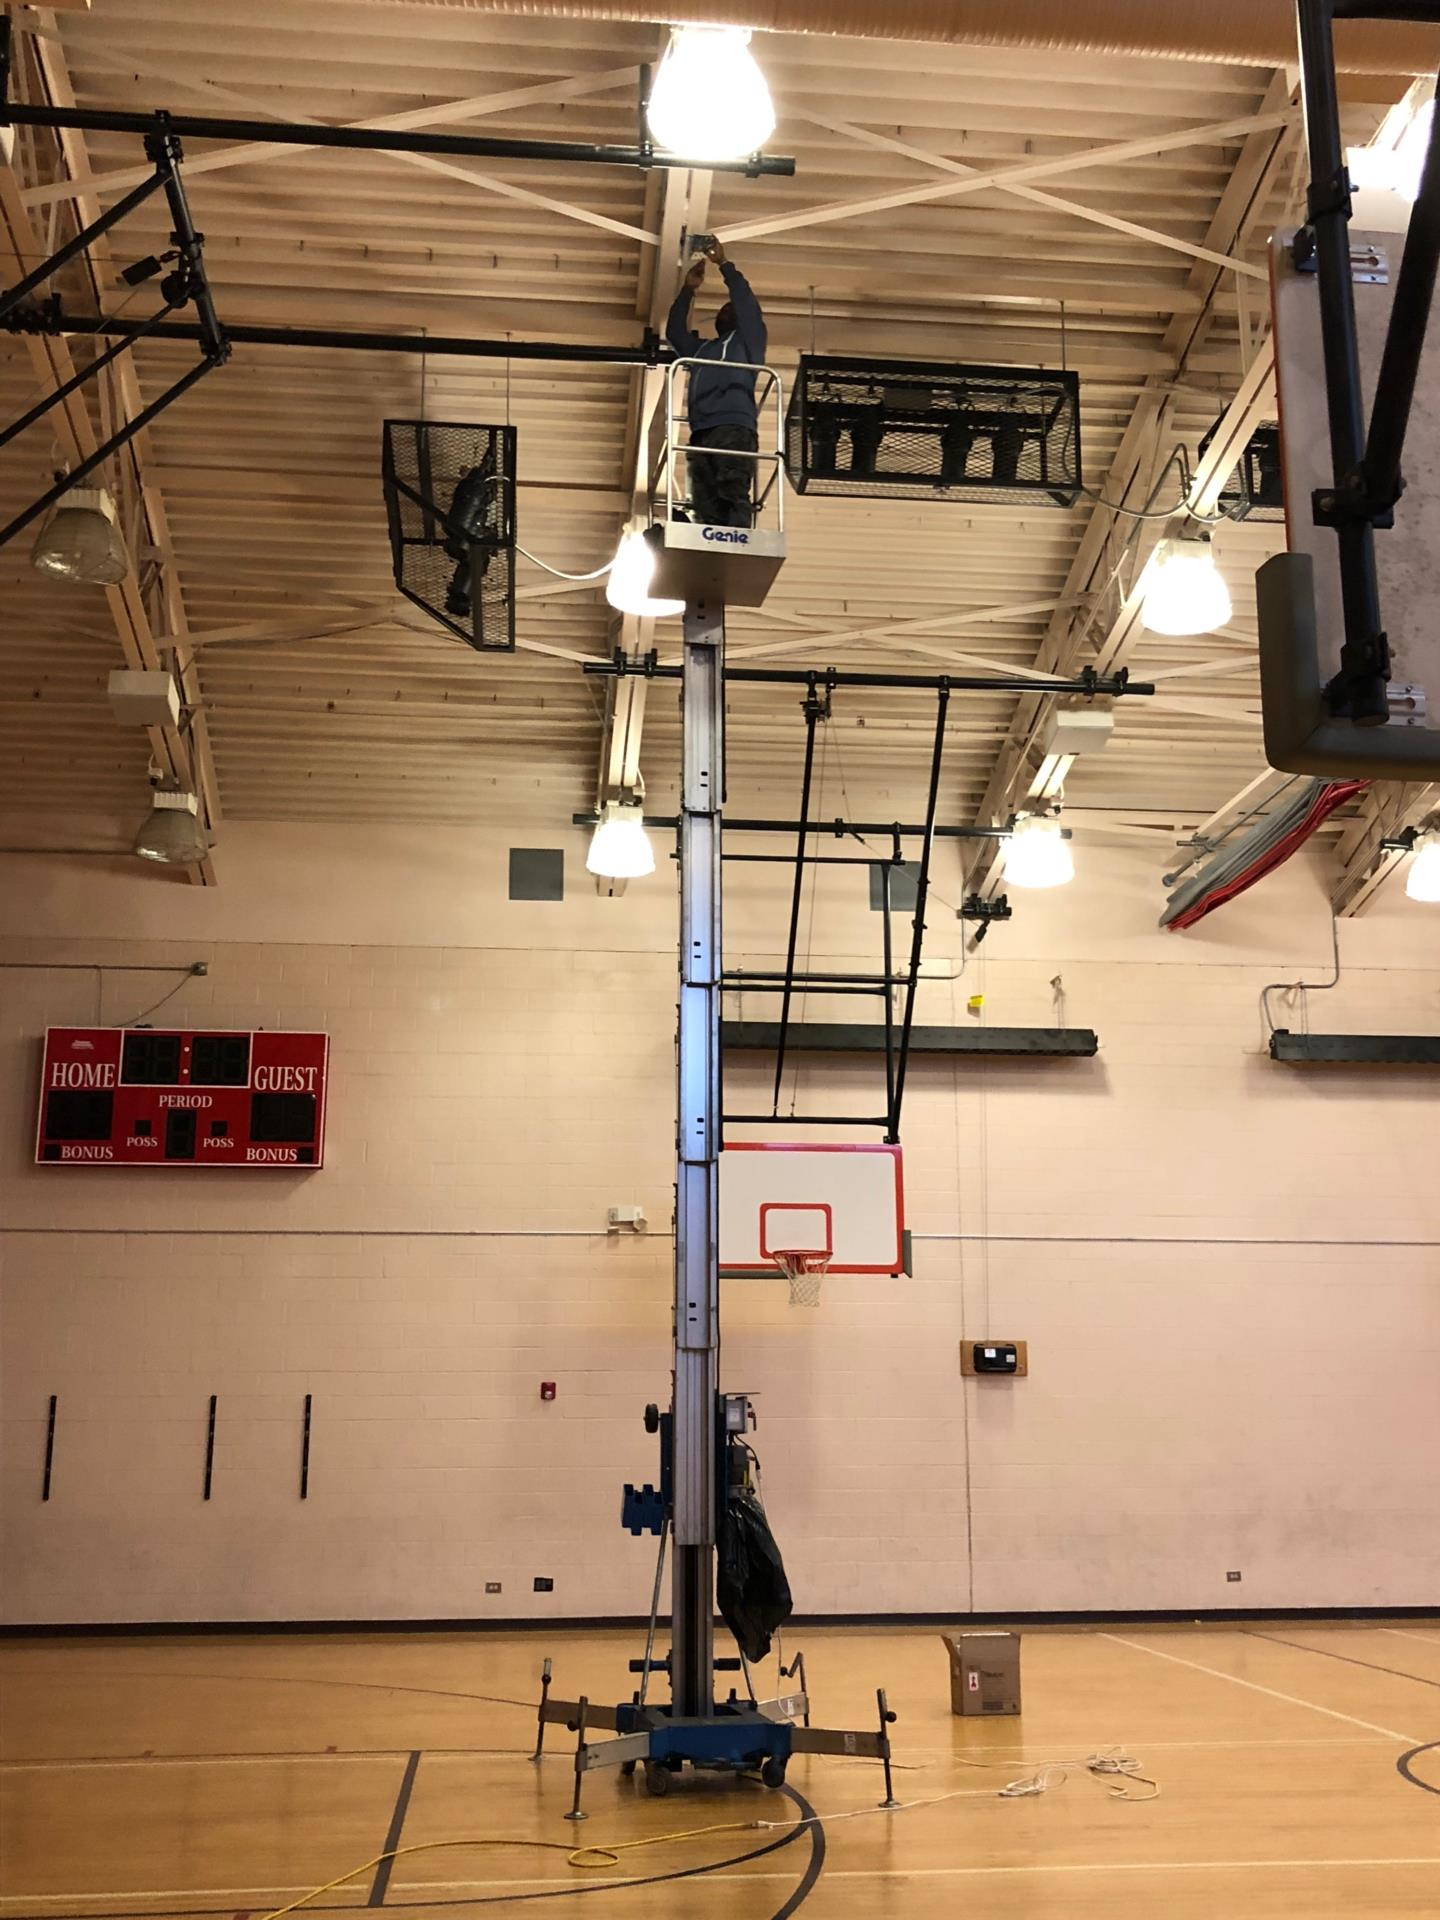 Installing access points in a gym